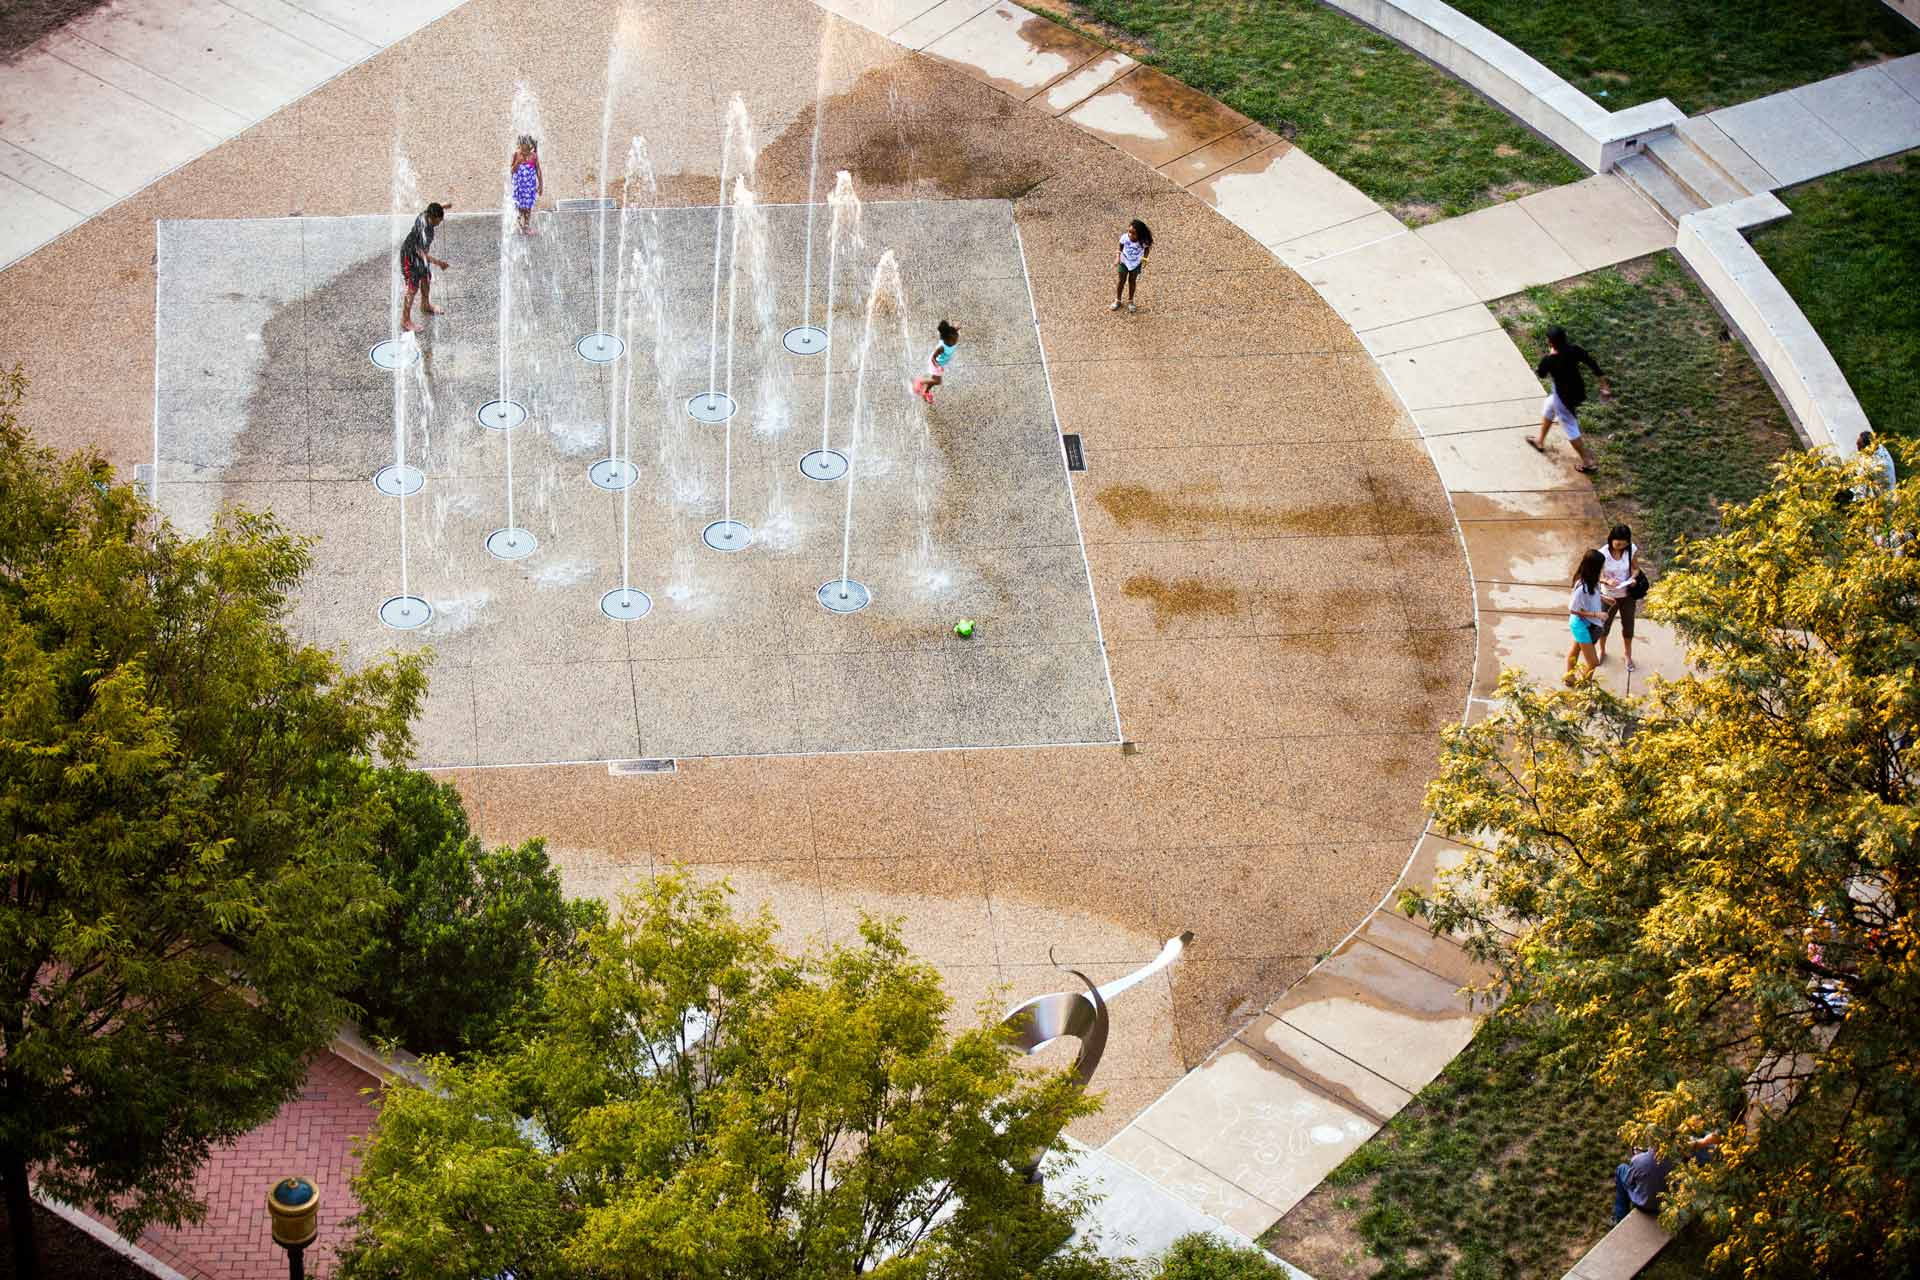 Aerial view of the Splash Pad at one of Reston Town Center's parks